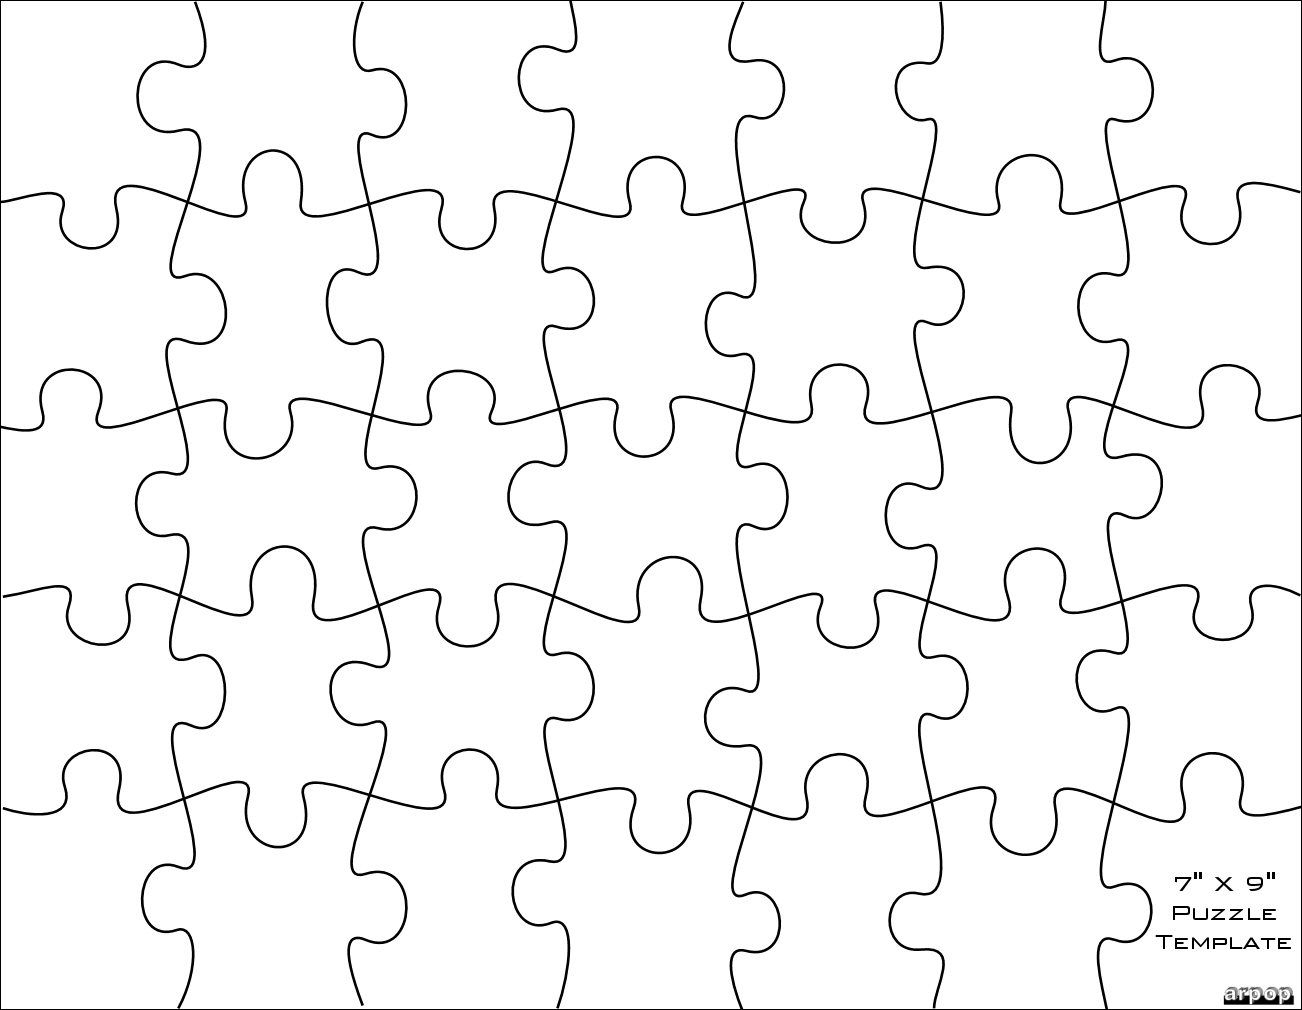 Free Scroll Saw Patternsarpop: Jigsaw Puzzle Templates | School - Free Printable Jigsaw Puzzles Template